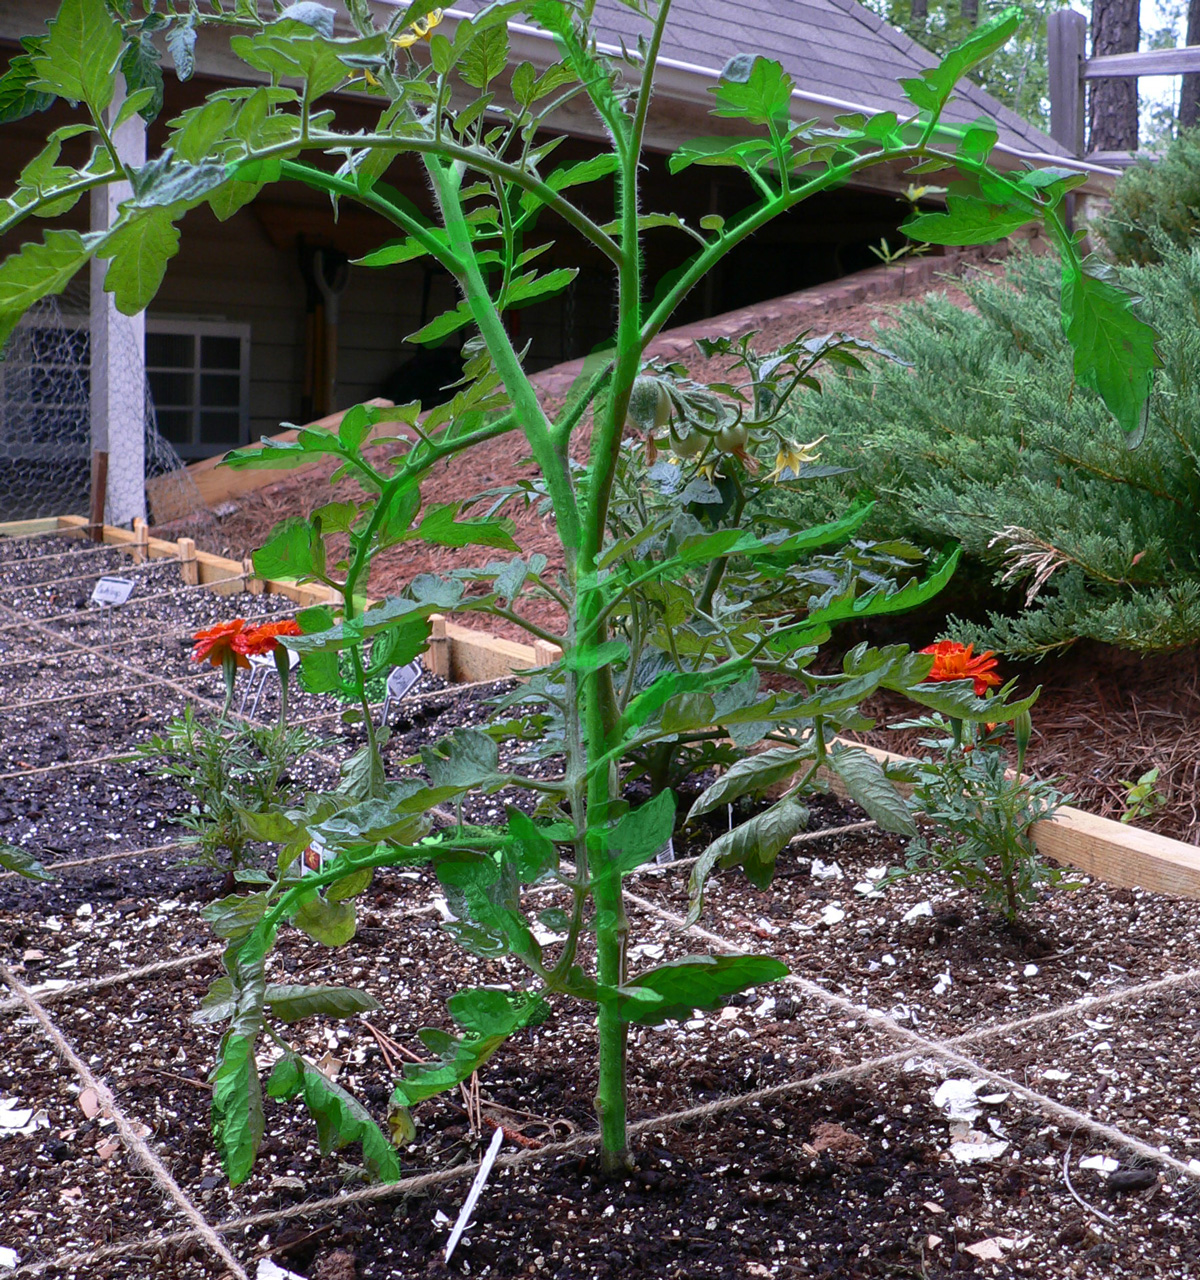 Adventures In Square Foot Gardening Pruning For Stronger Stems And More Fruit